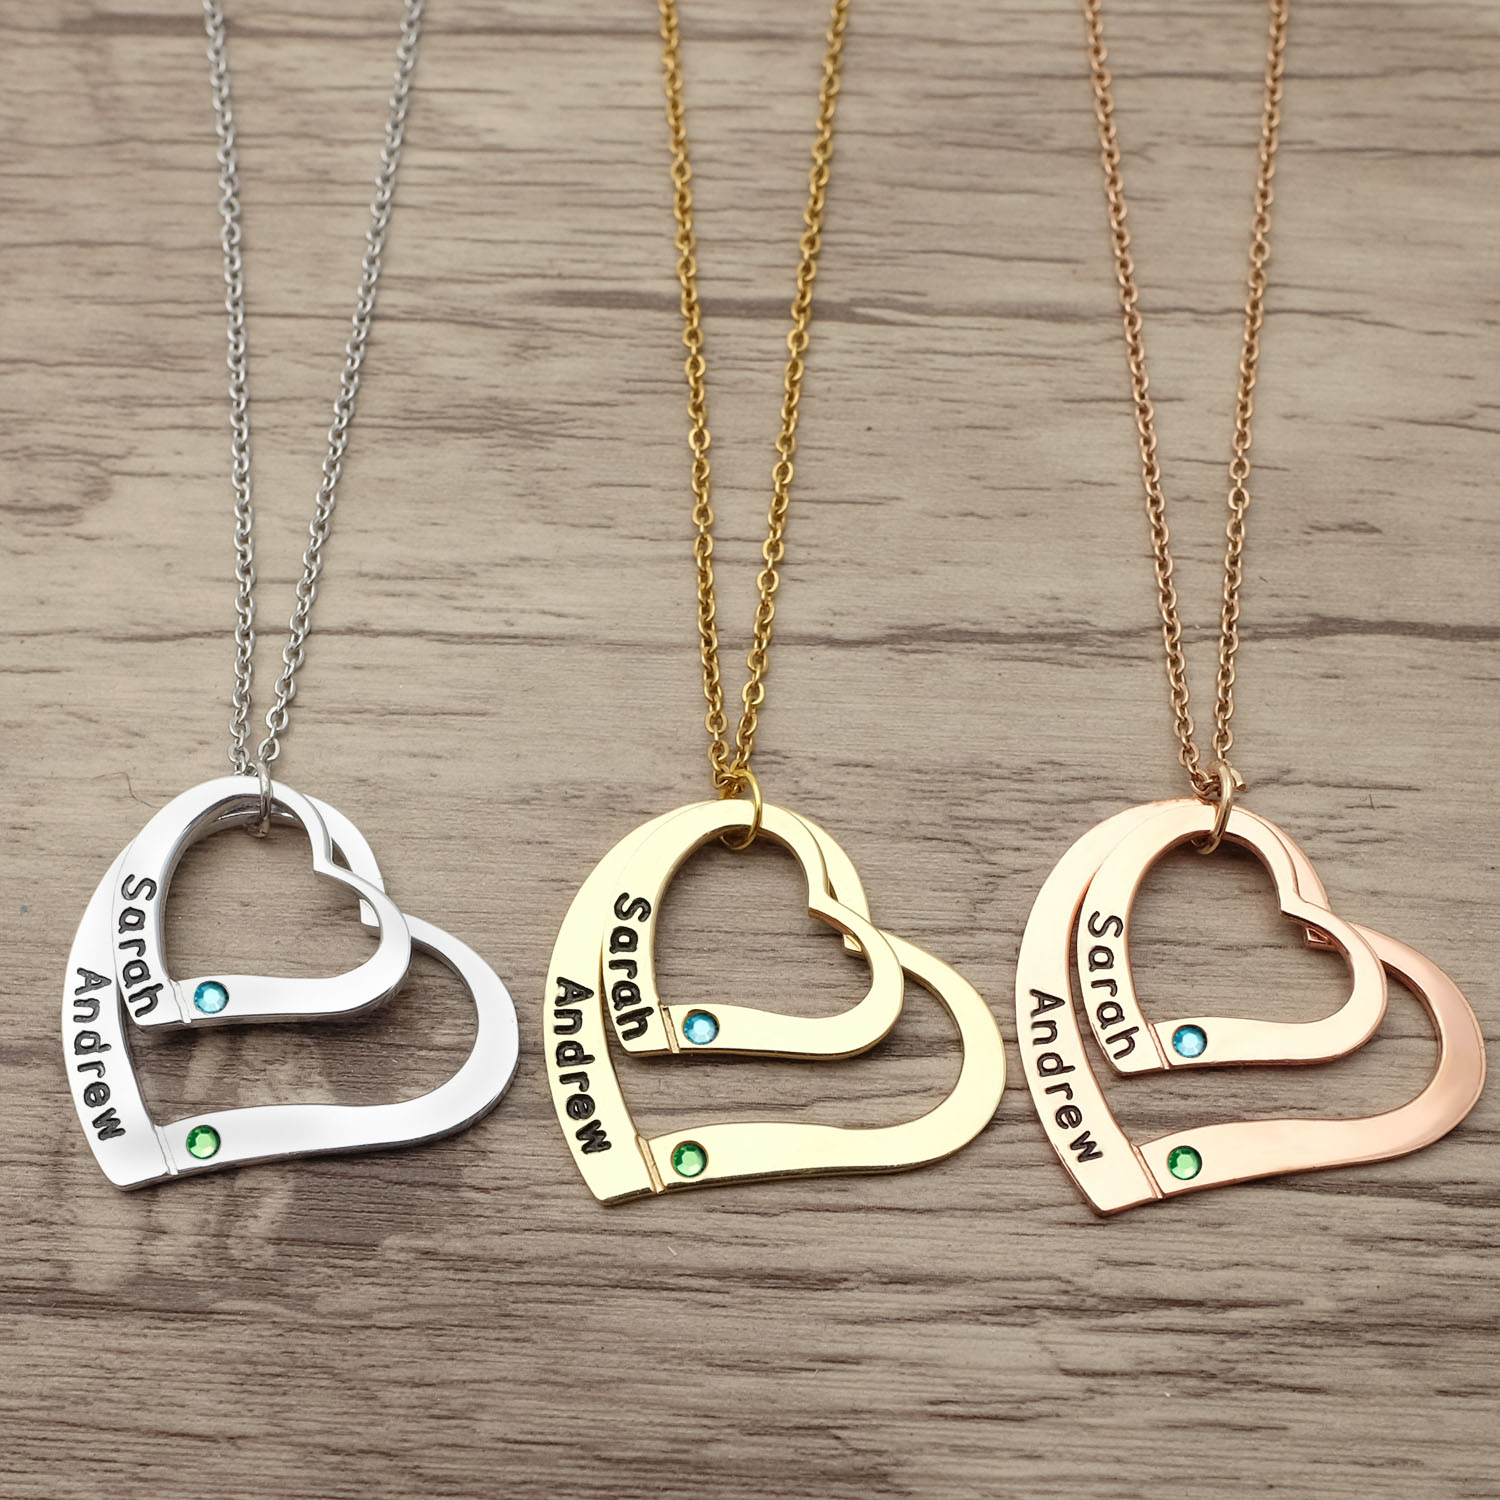 Personality Name Necklace Heart Pendant Name Jewelry Valentines Gift Friendship Necklace Gift For Her